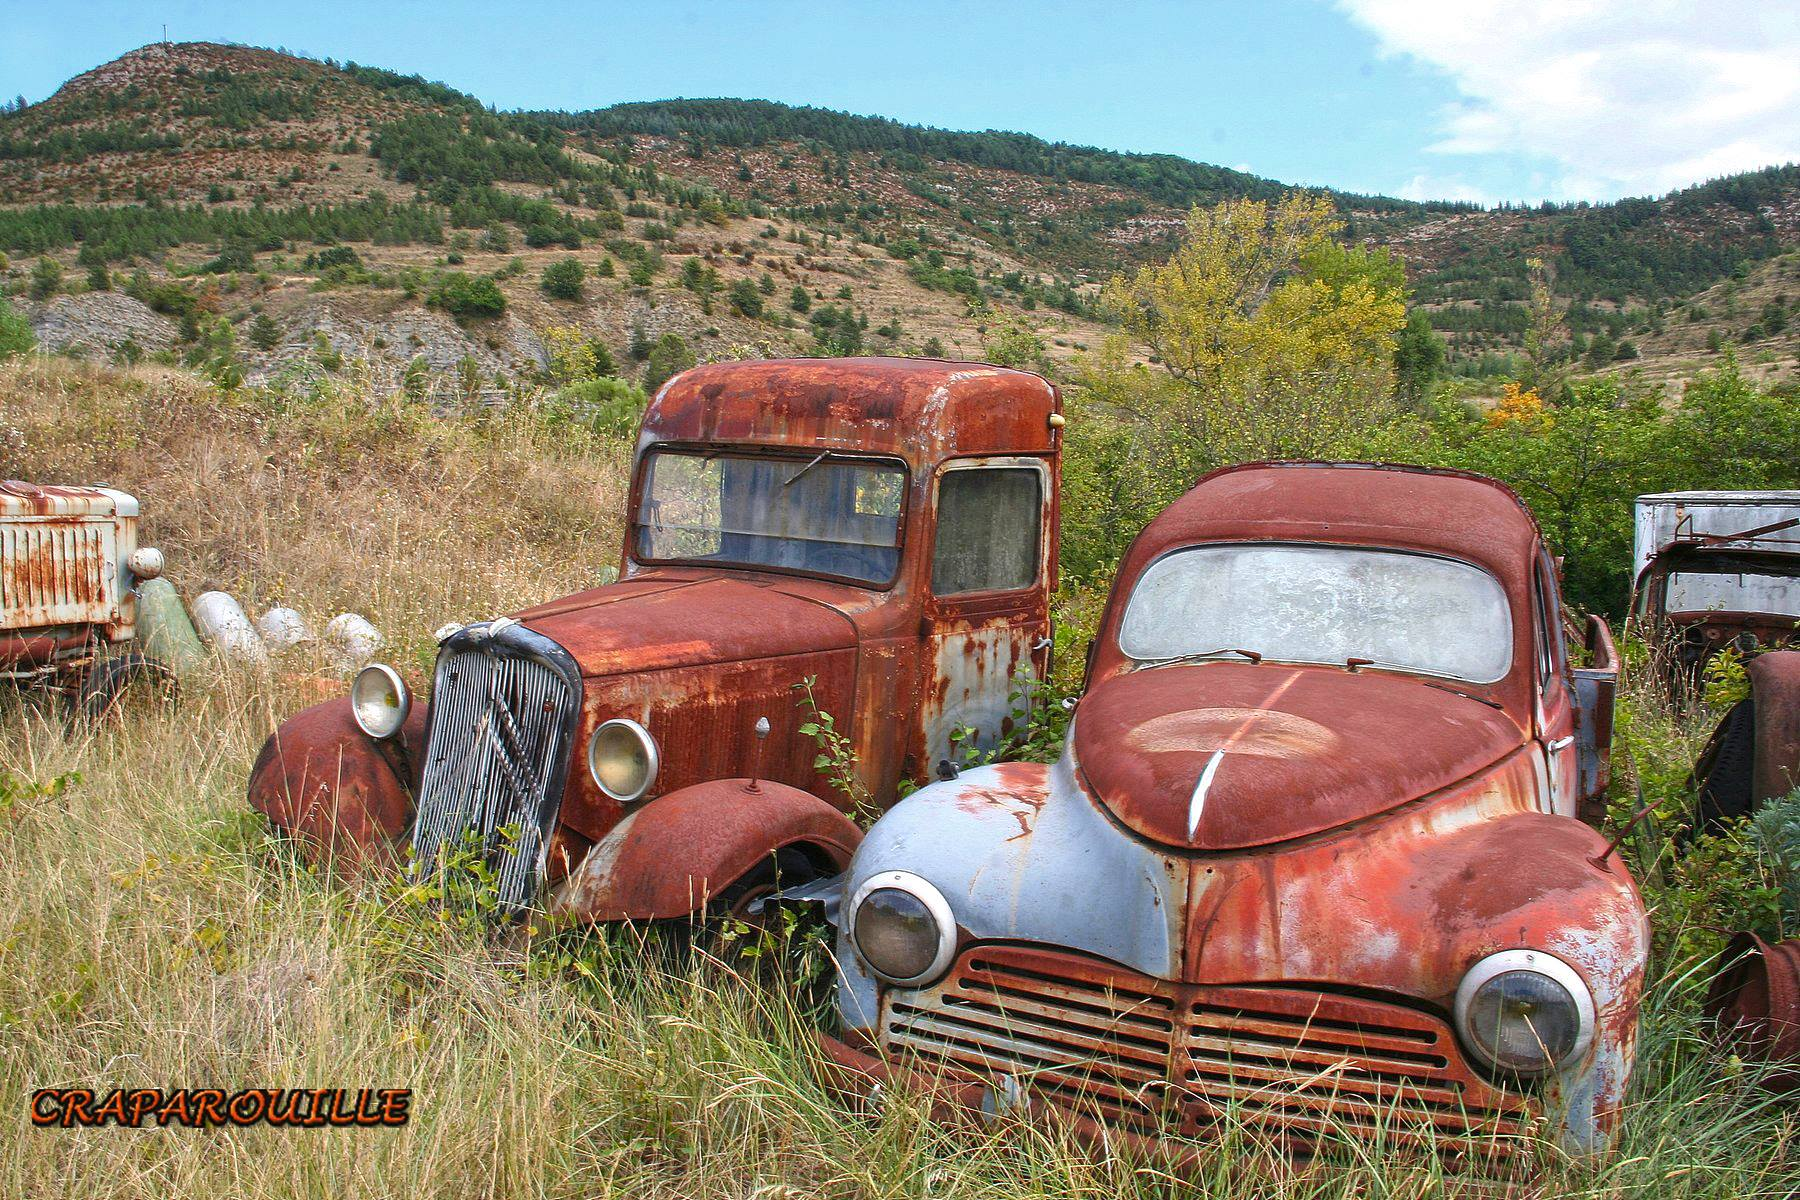 Photography-Diamonds-in-Rust-Craparouille-99